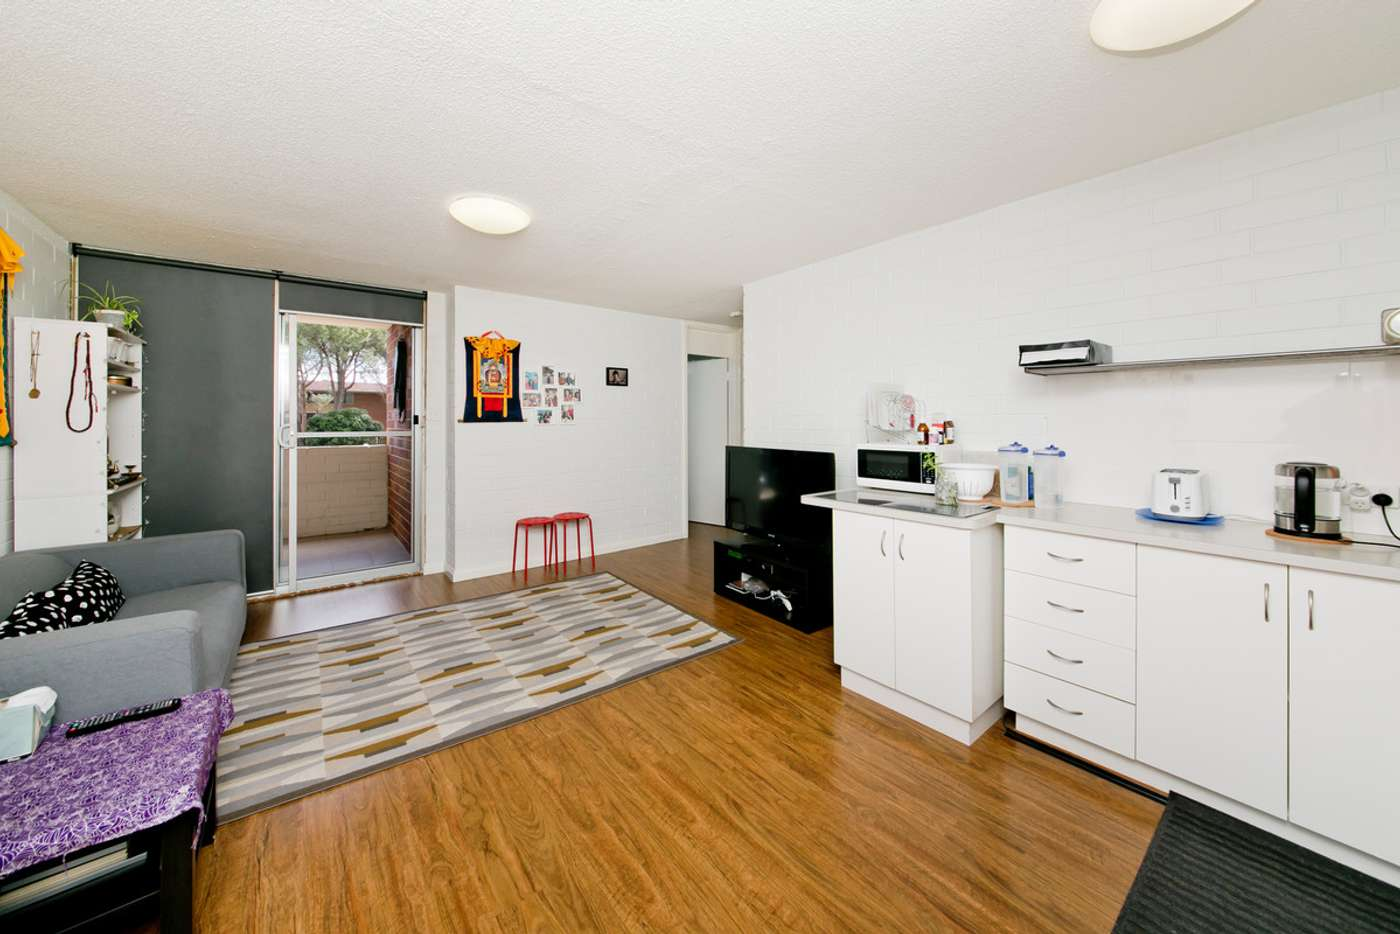 Main view of Homely apartment listing, 21A/49 Herdsman Parade, Wembley WA 6014